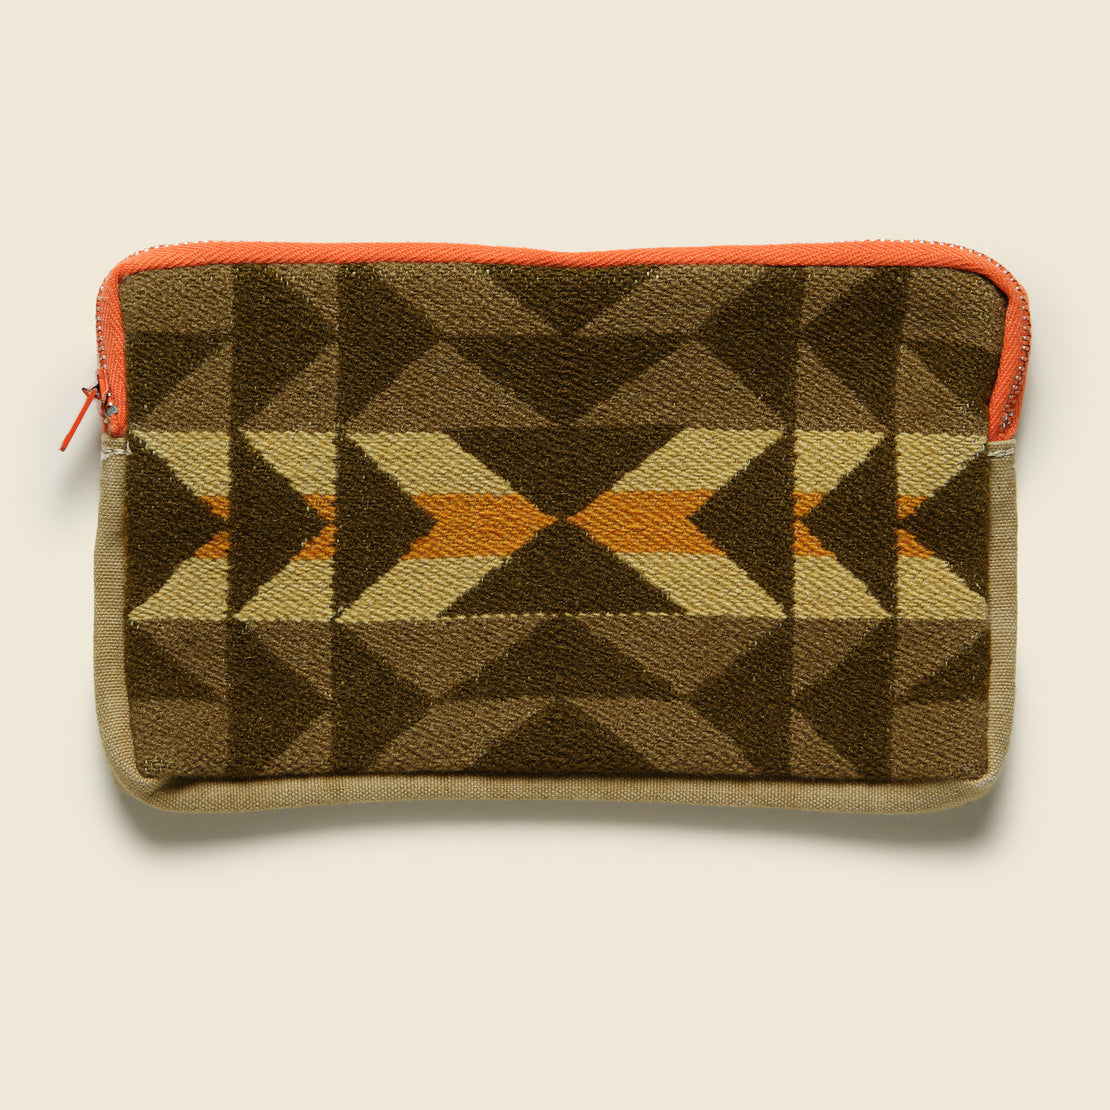 Vintage Zipper Pouch - Orange/Brown/Tan